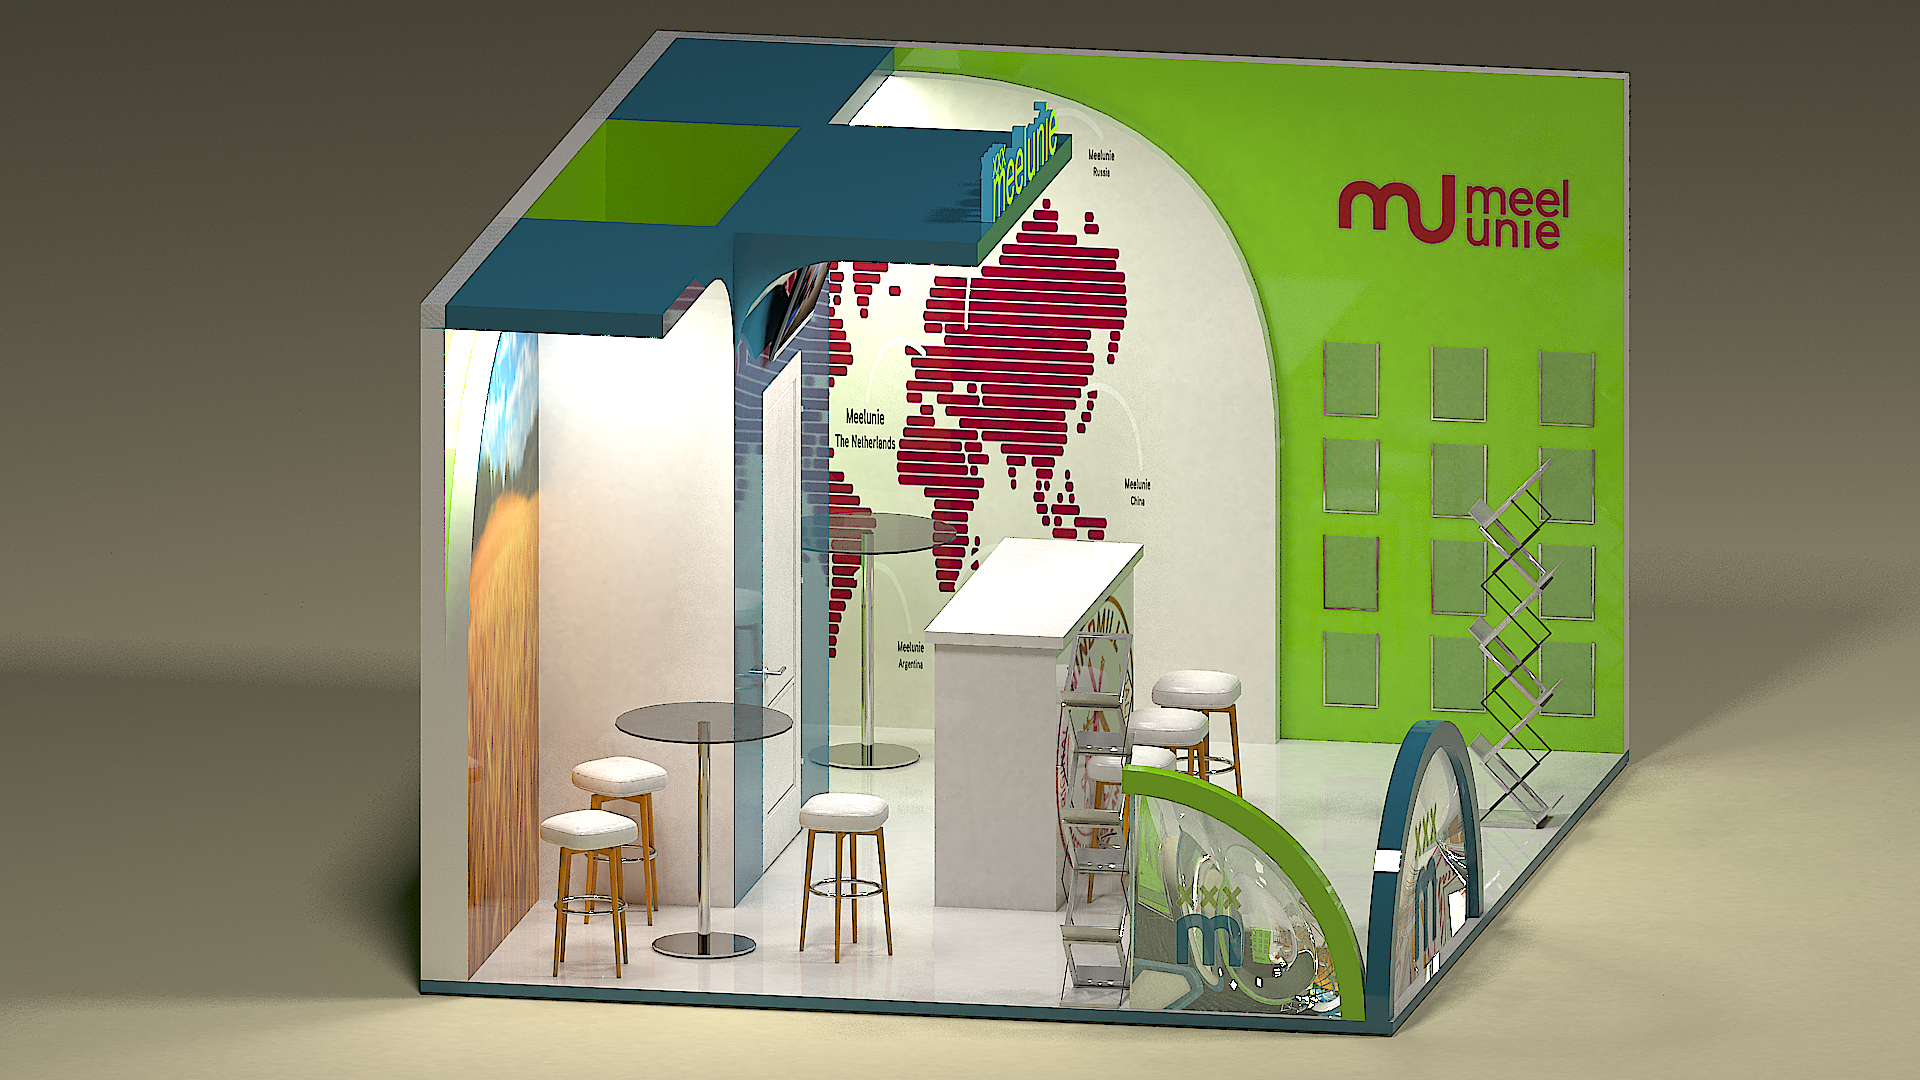 exhibition stand in 3d max vray 3.0 image